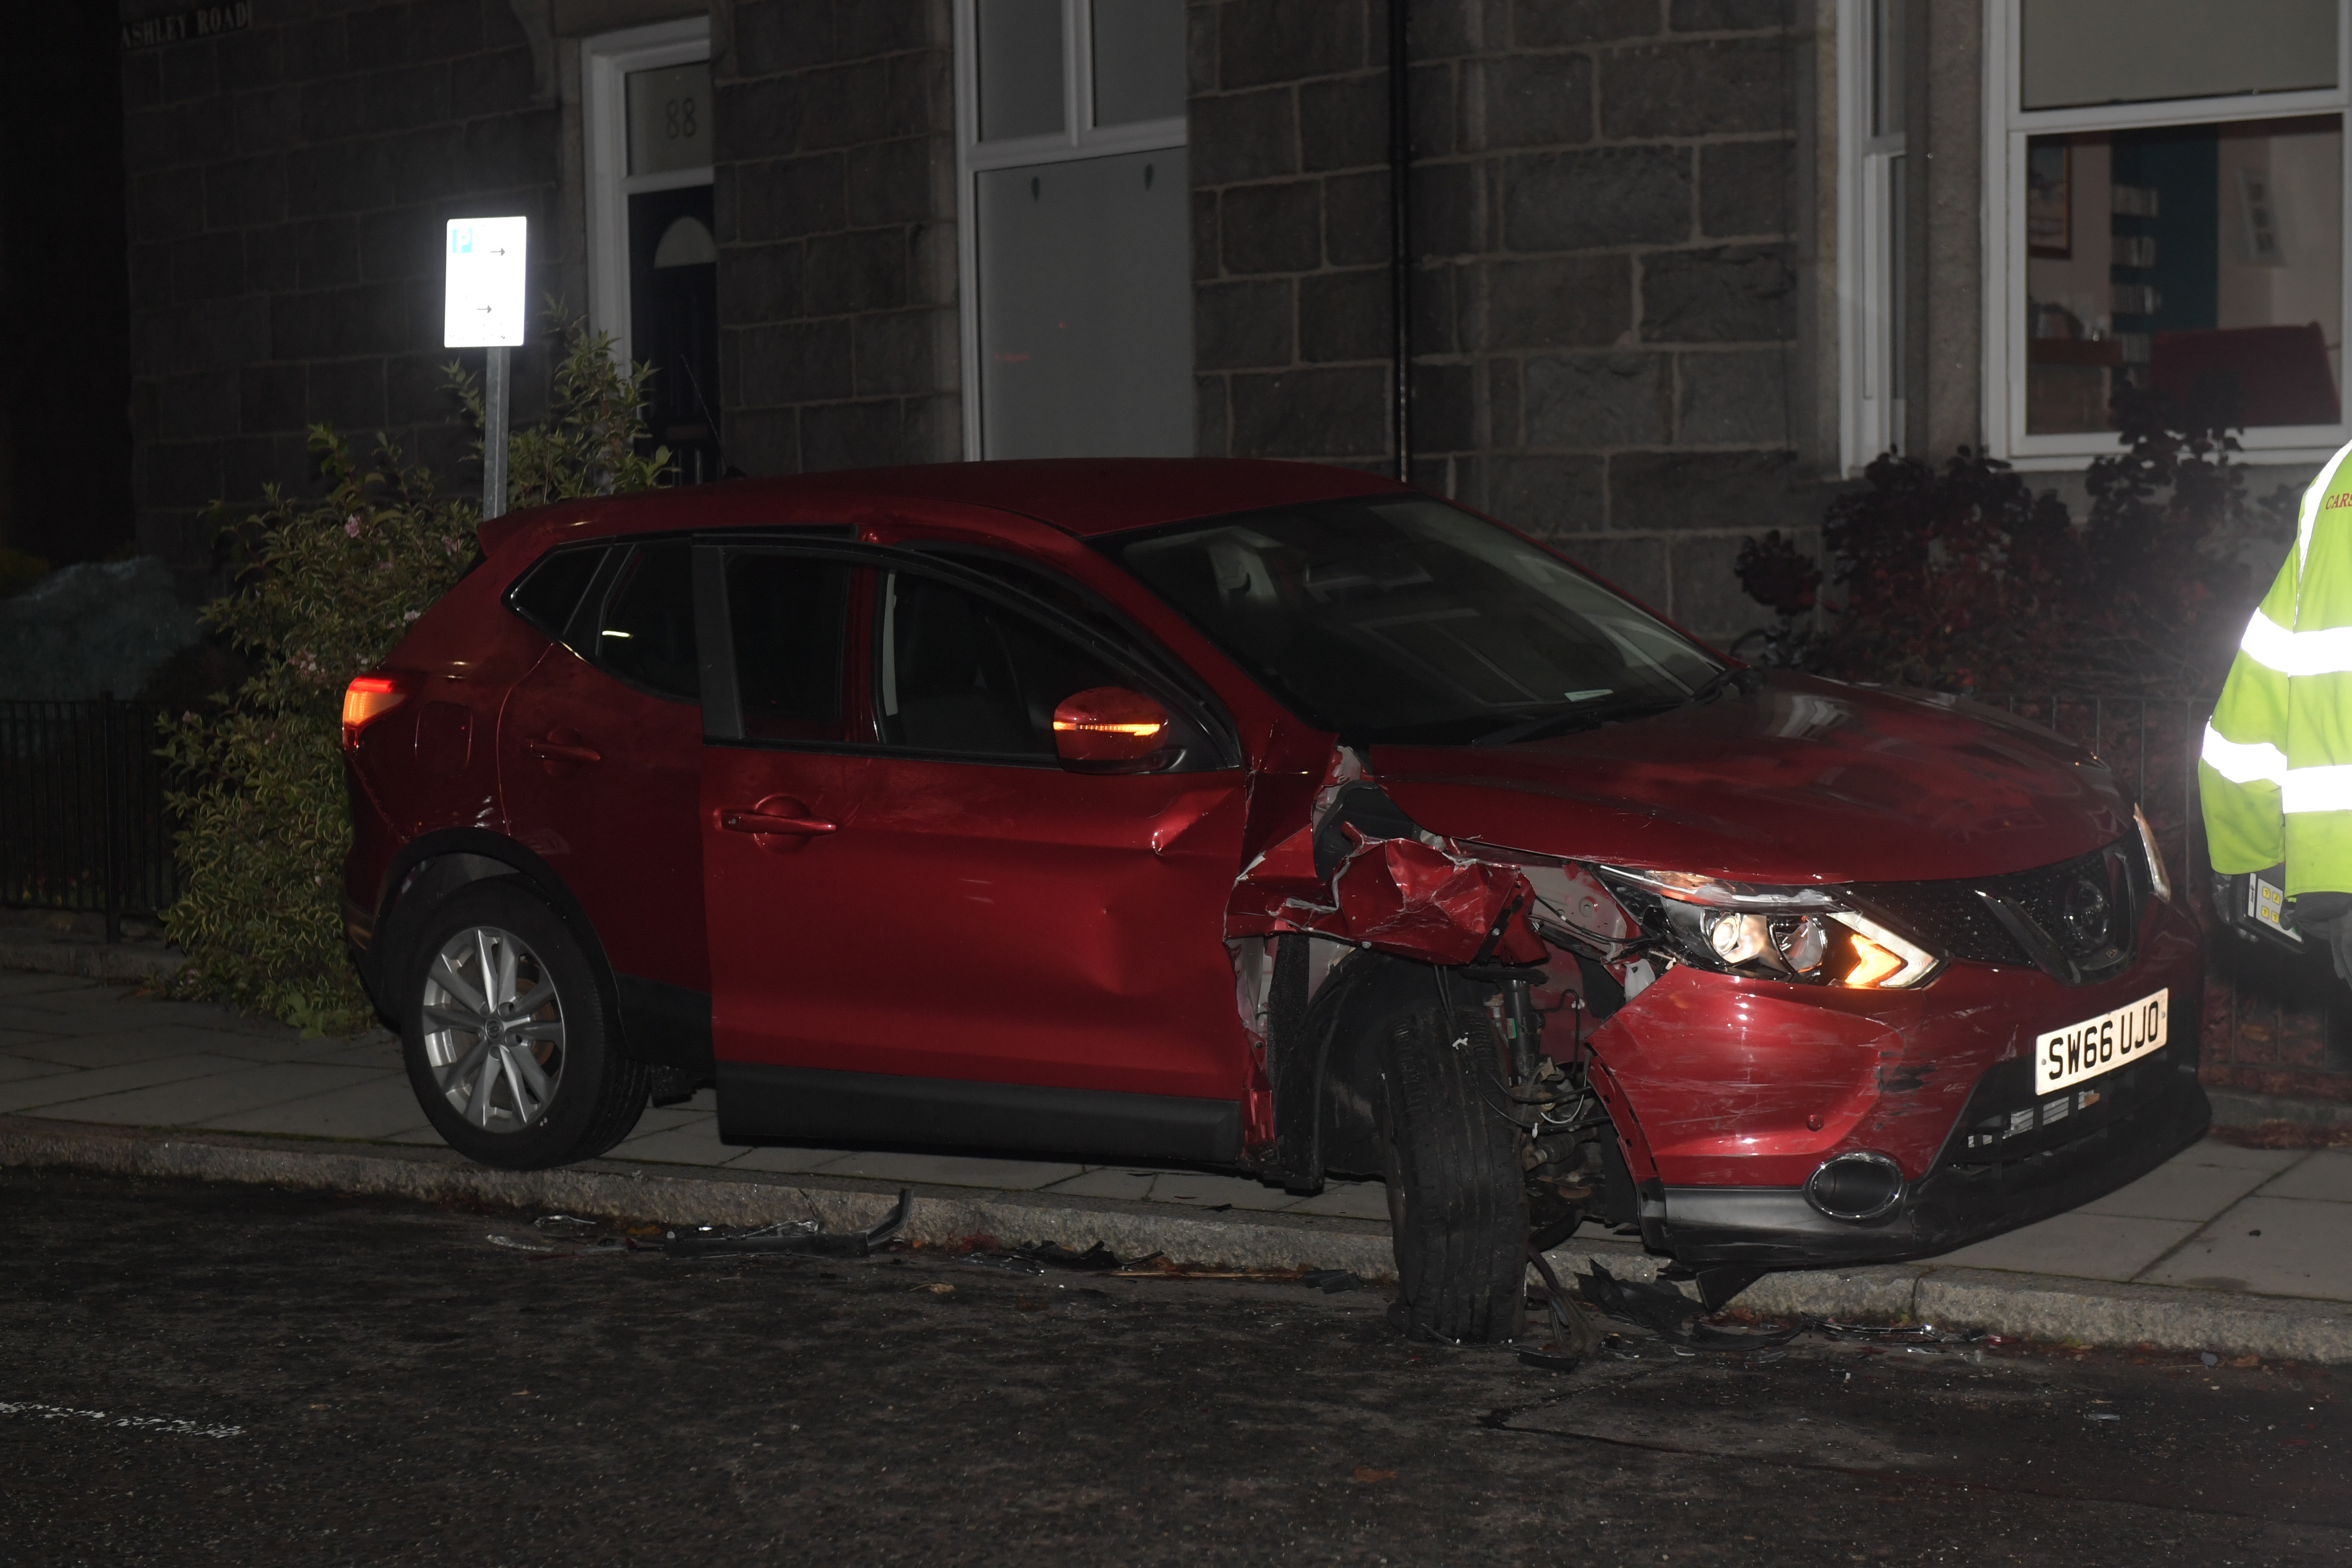 One of the vehicles involved.